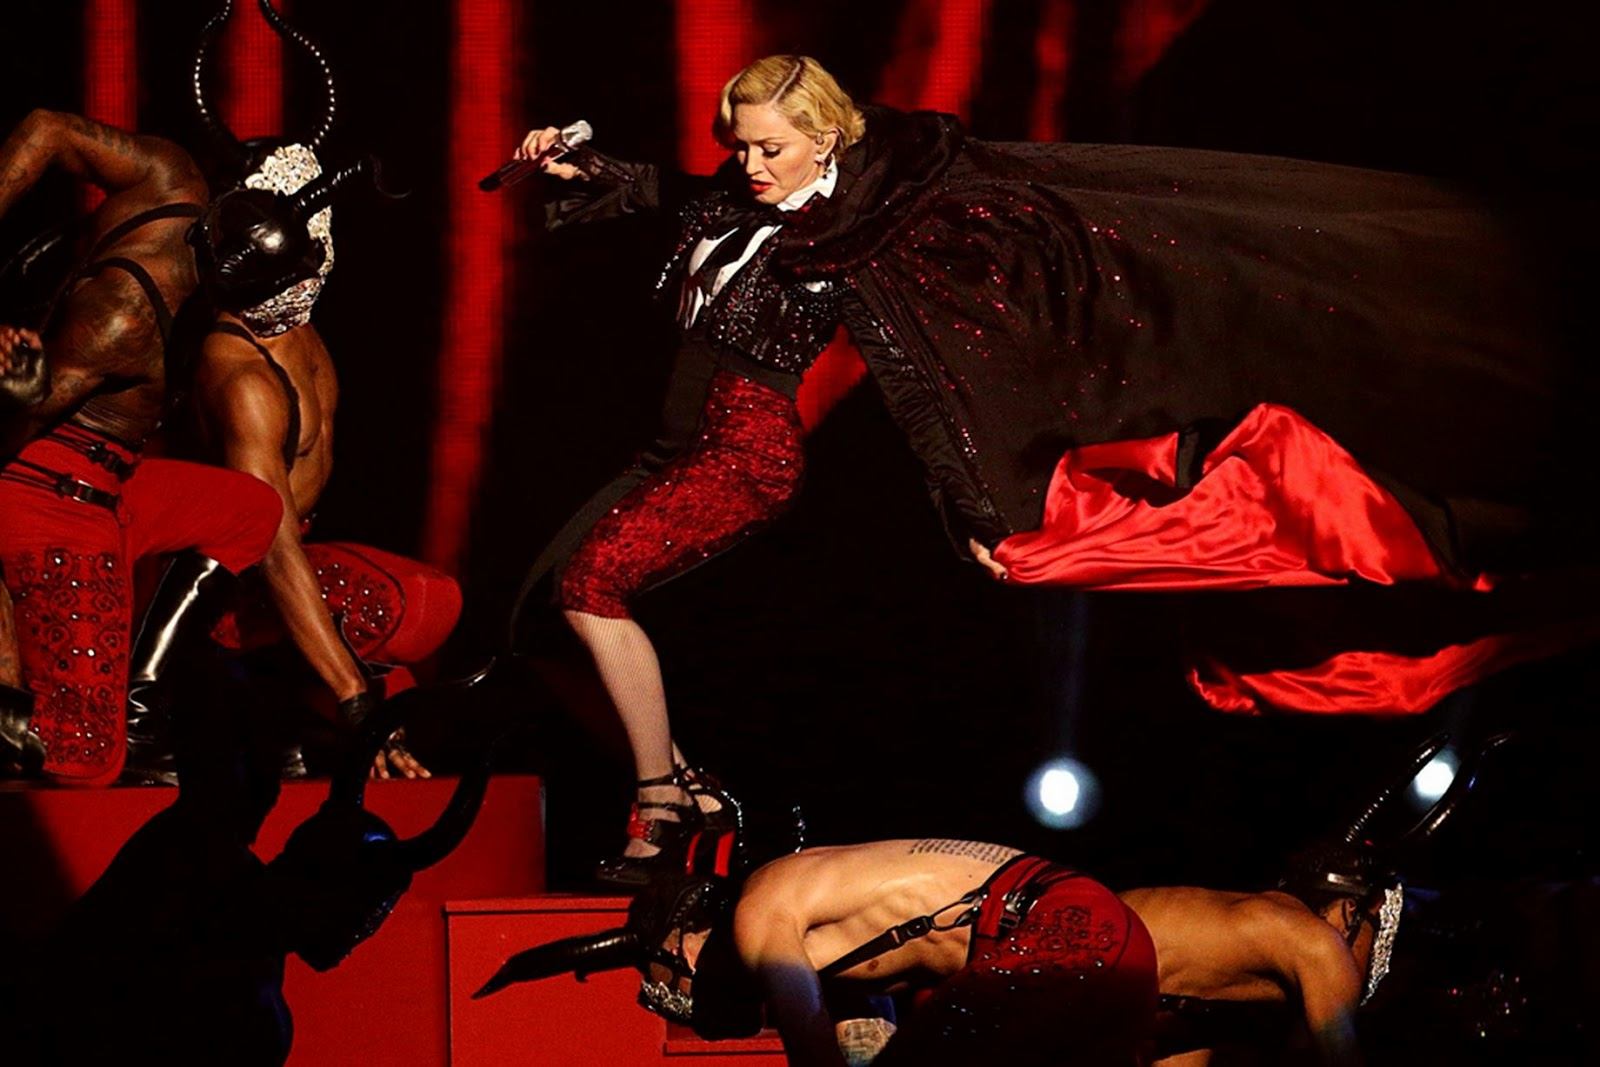 Singer Madonna falls during her performance at the BRIT music awards.